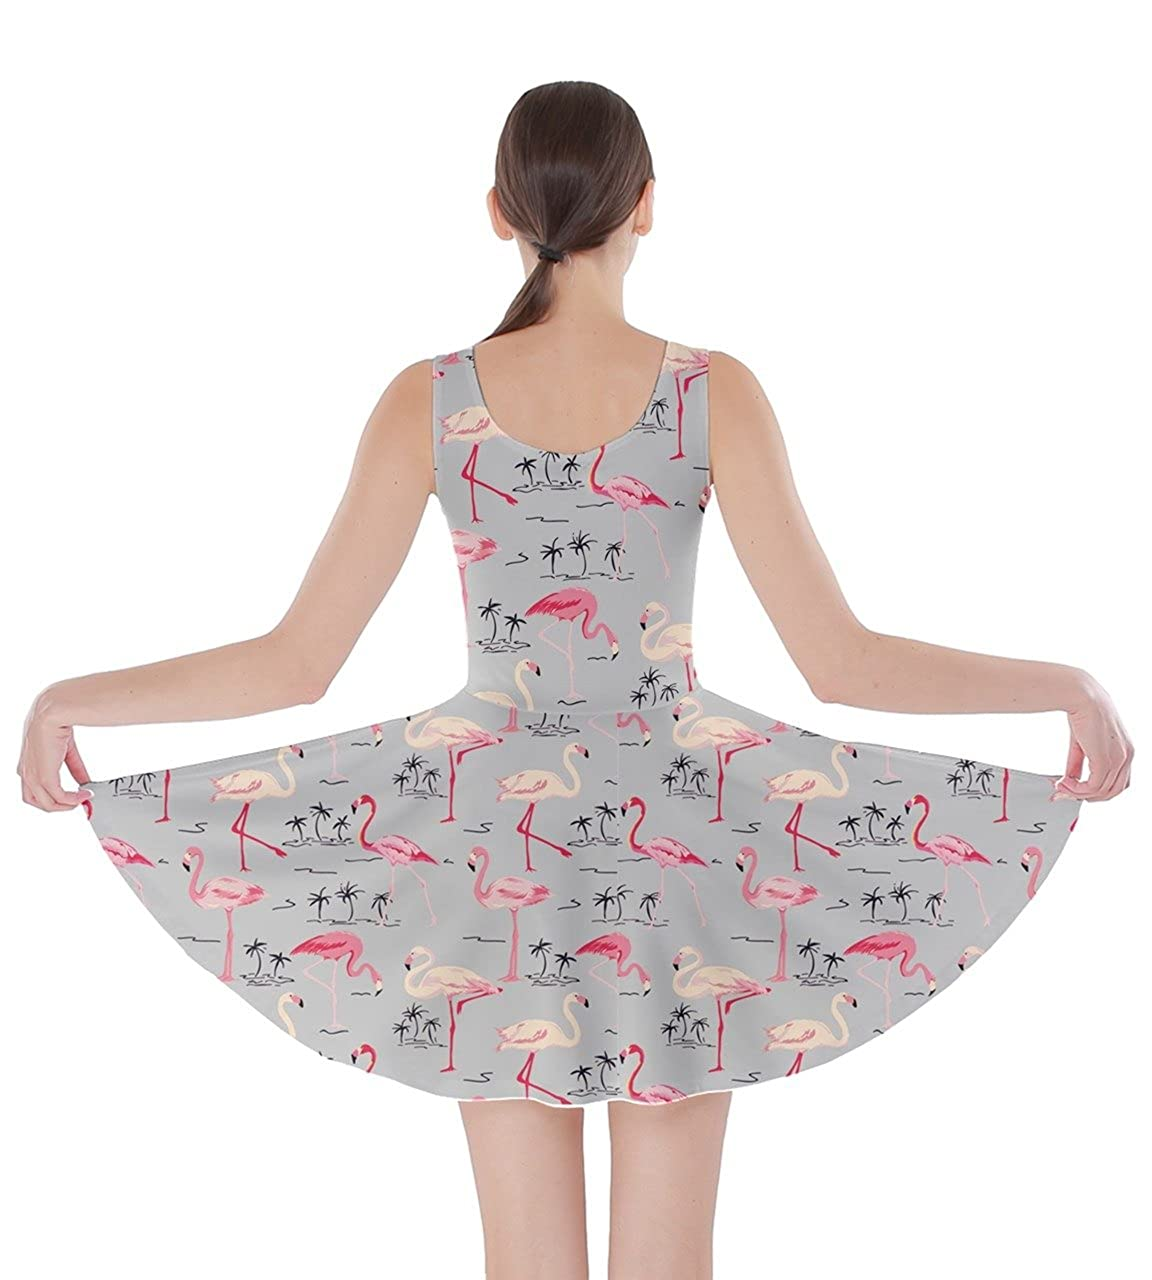 420b377a7d CowCow Womens Flamingo Birds Feather Summer Hot Tropical Poolside  Partydress Beach Skater Dress, XS-5XL: Amazon.ca: Clothing & Accessories